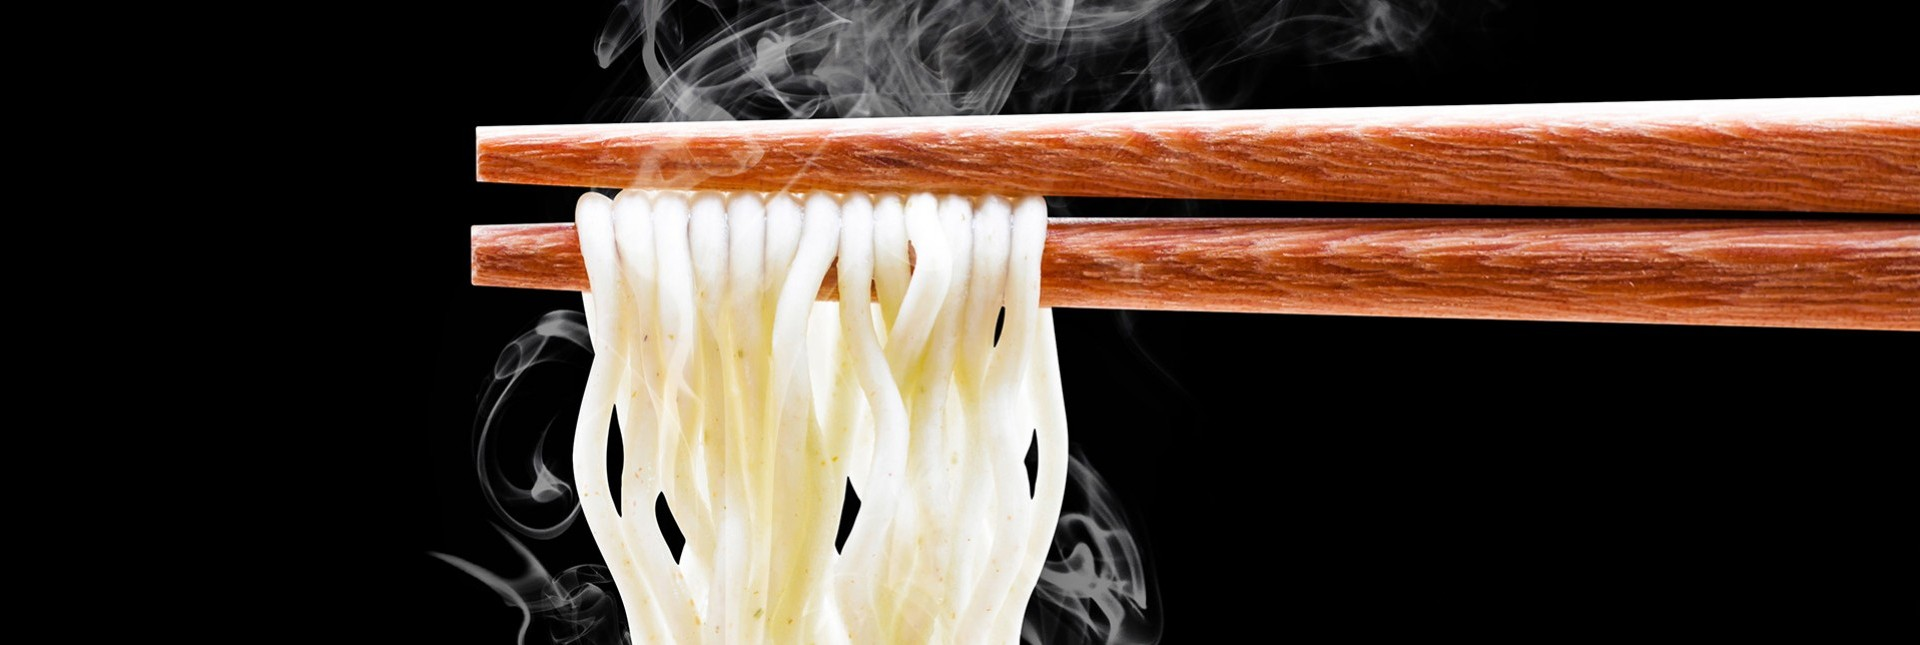 Instant Noodles | How Are They Made?